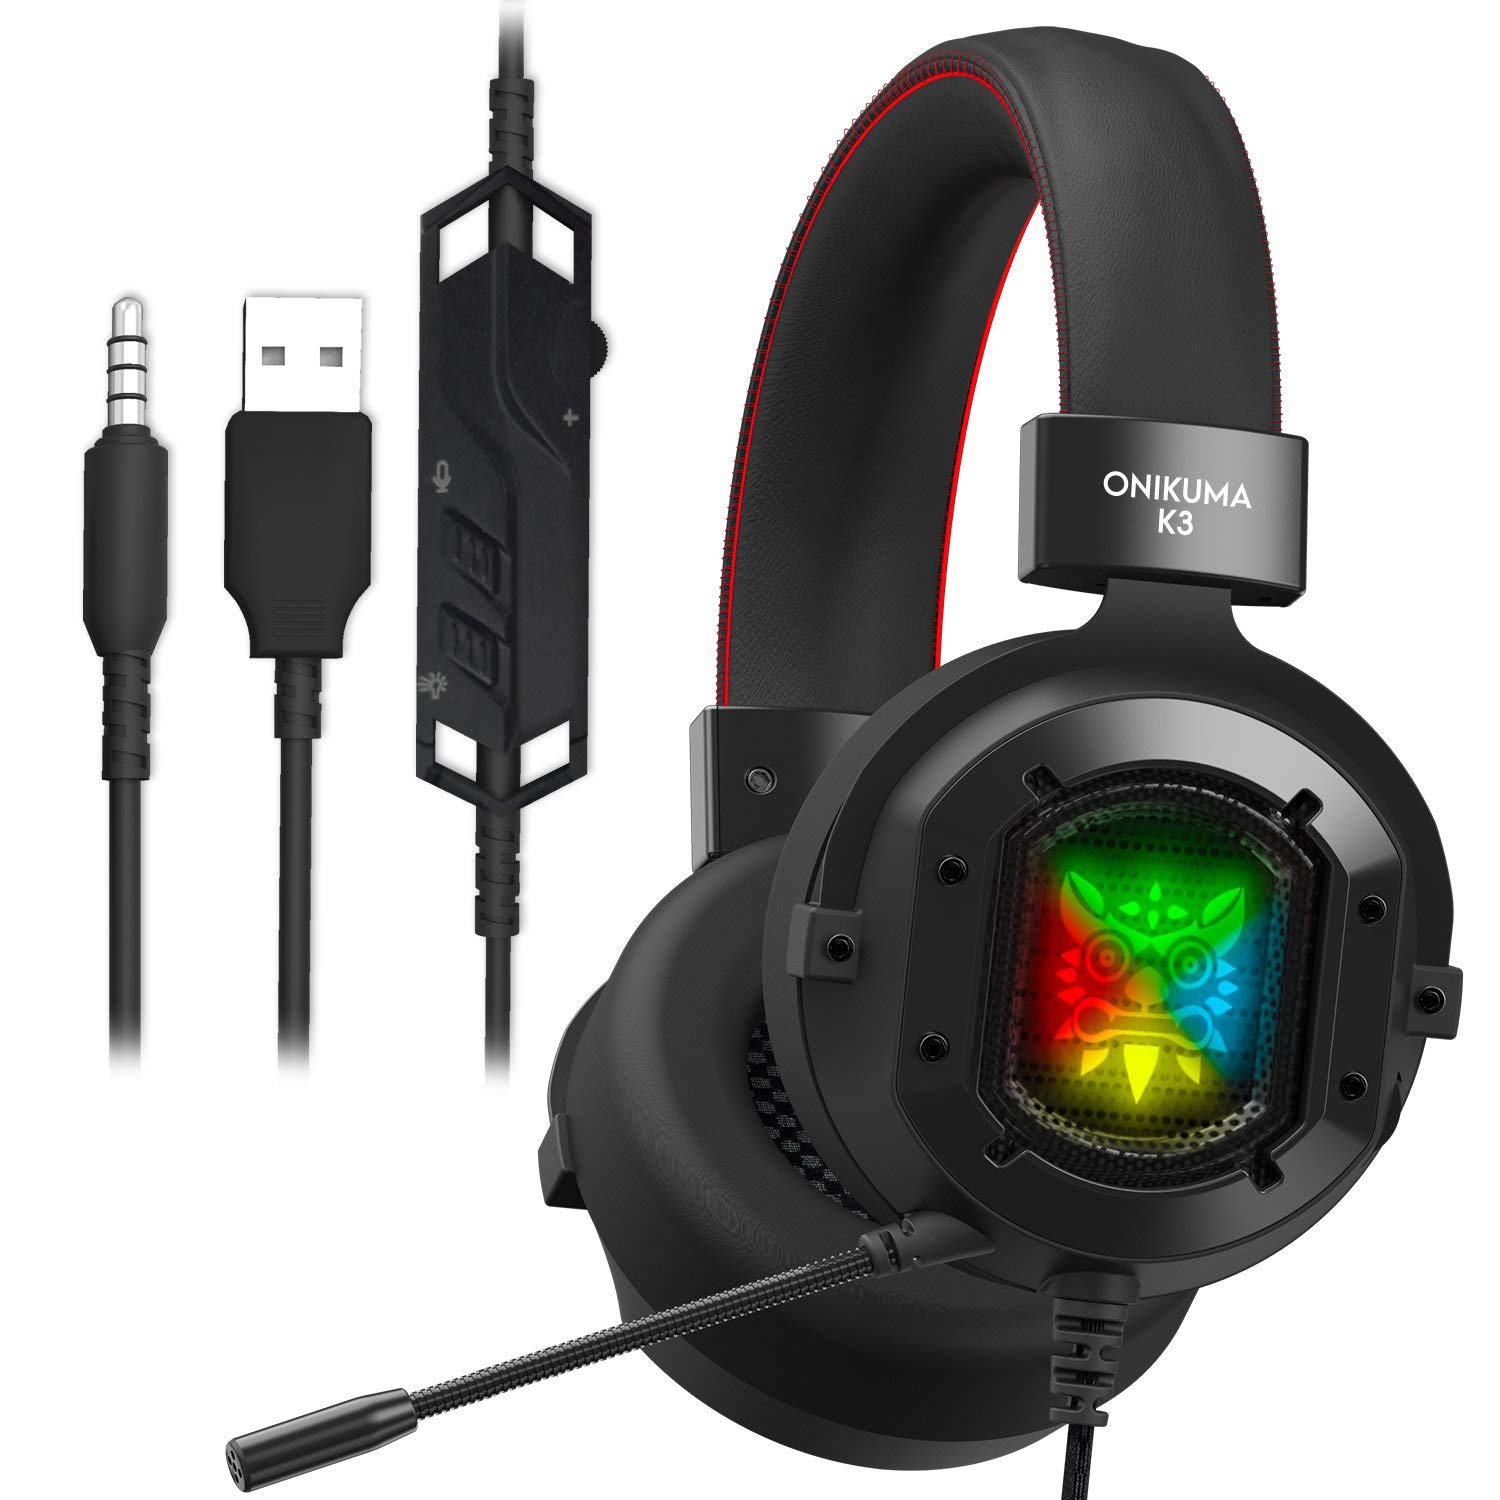 ONIKUMA K3 Stereo Gaming Headset for Xbox One, PC, PS4 Over-Ear Headphones with Noise Canceling Mic, Soft Breathing Earmuffs, LED Light, Mute Volume Control for Mac Laptop Tablet Smatphone